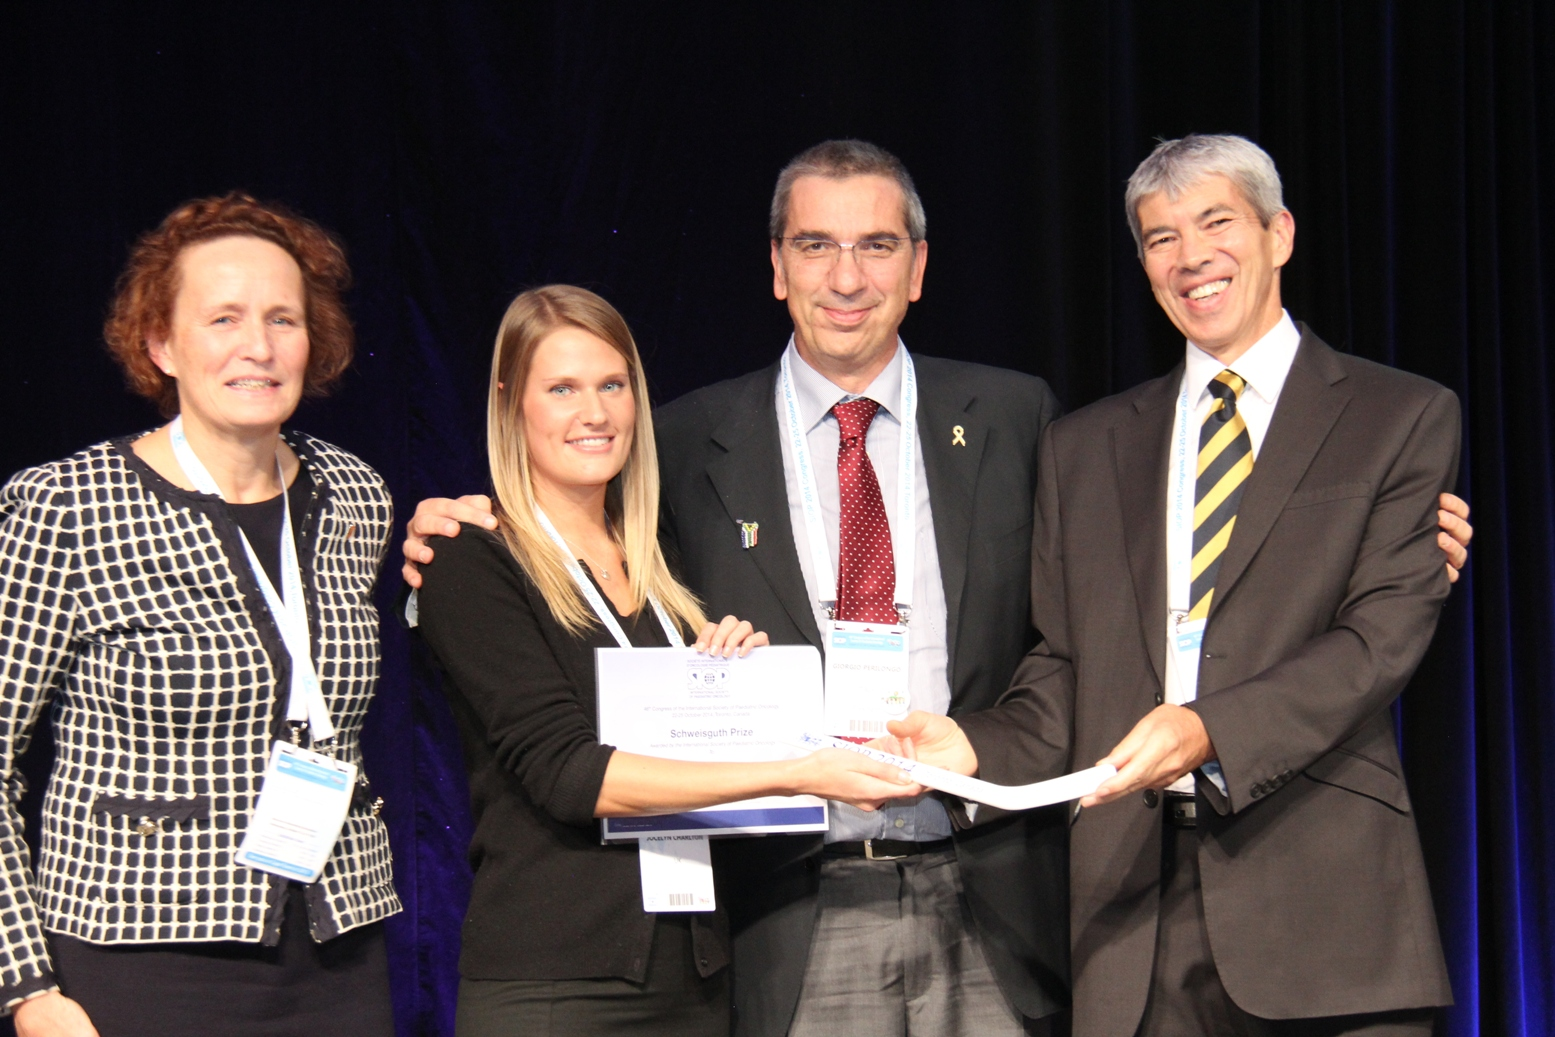 SIOP 2014 Schweisguth Winner Jocelyn Charlton (second from left)